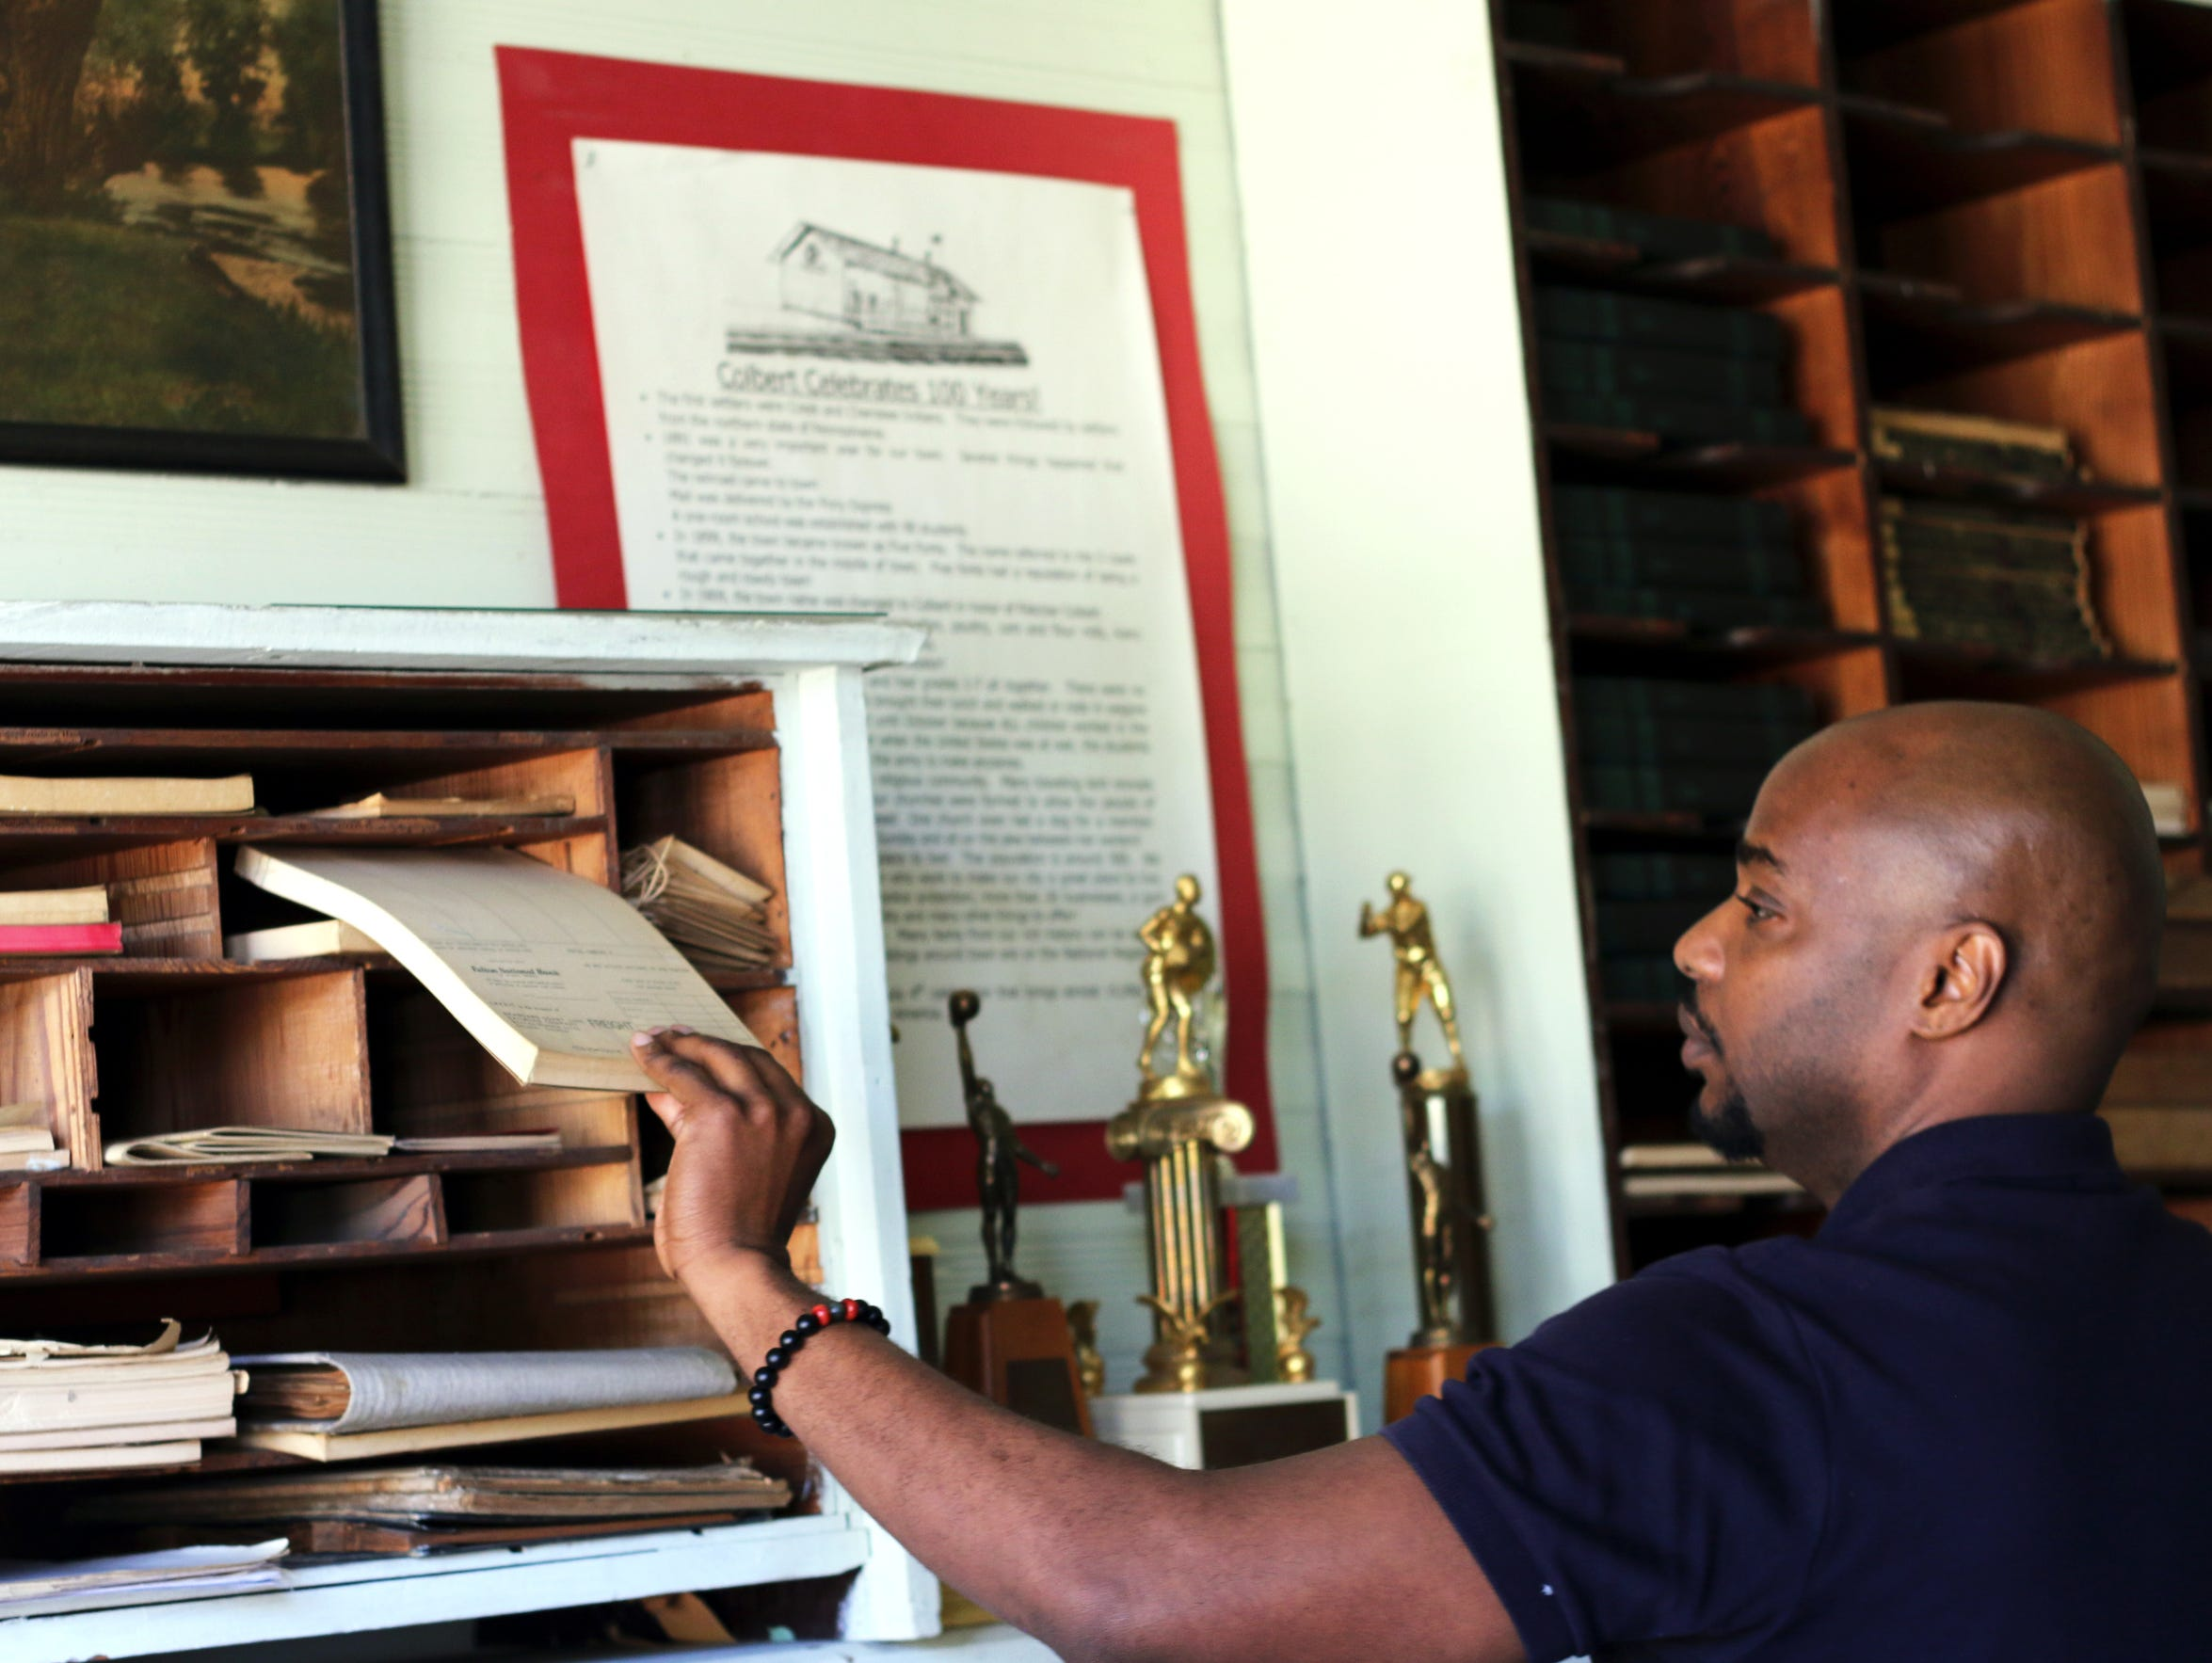 Evan Lewis browses old documents inside the small history